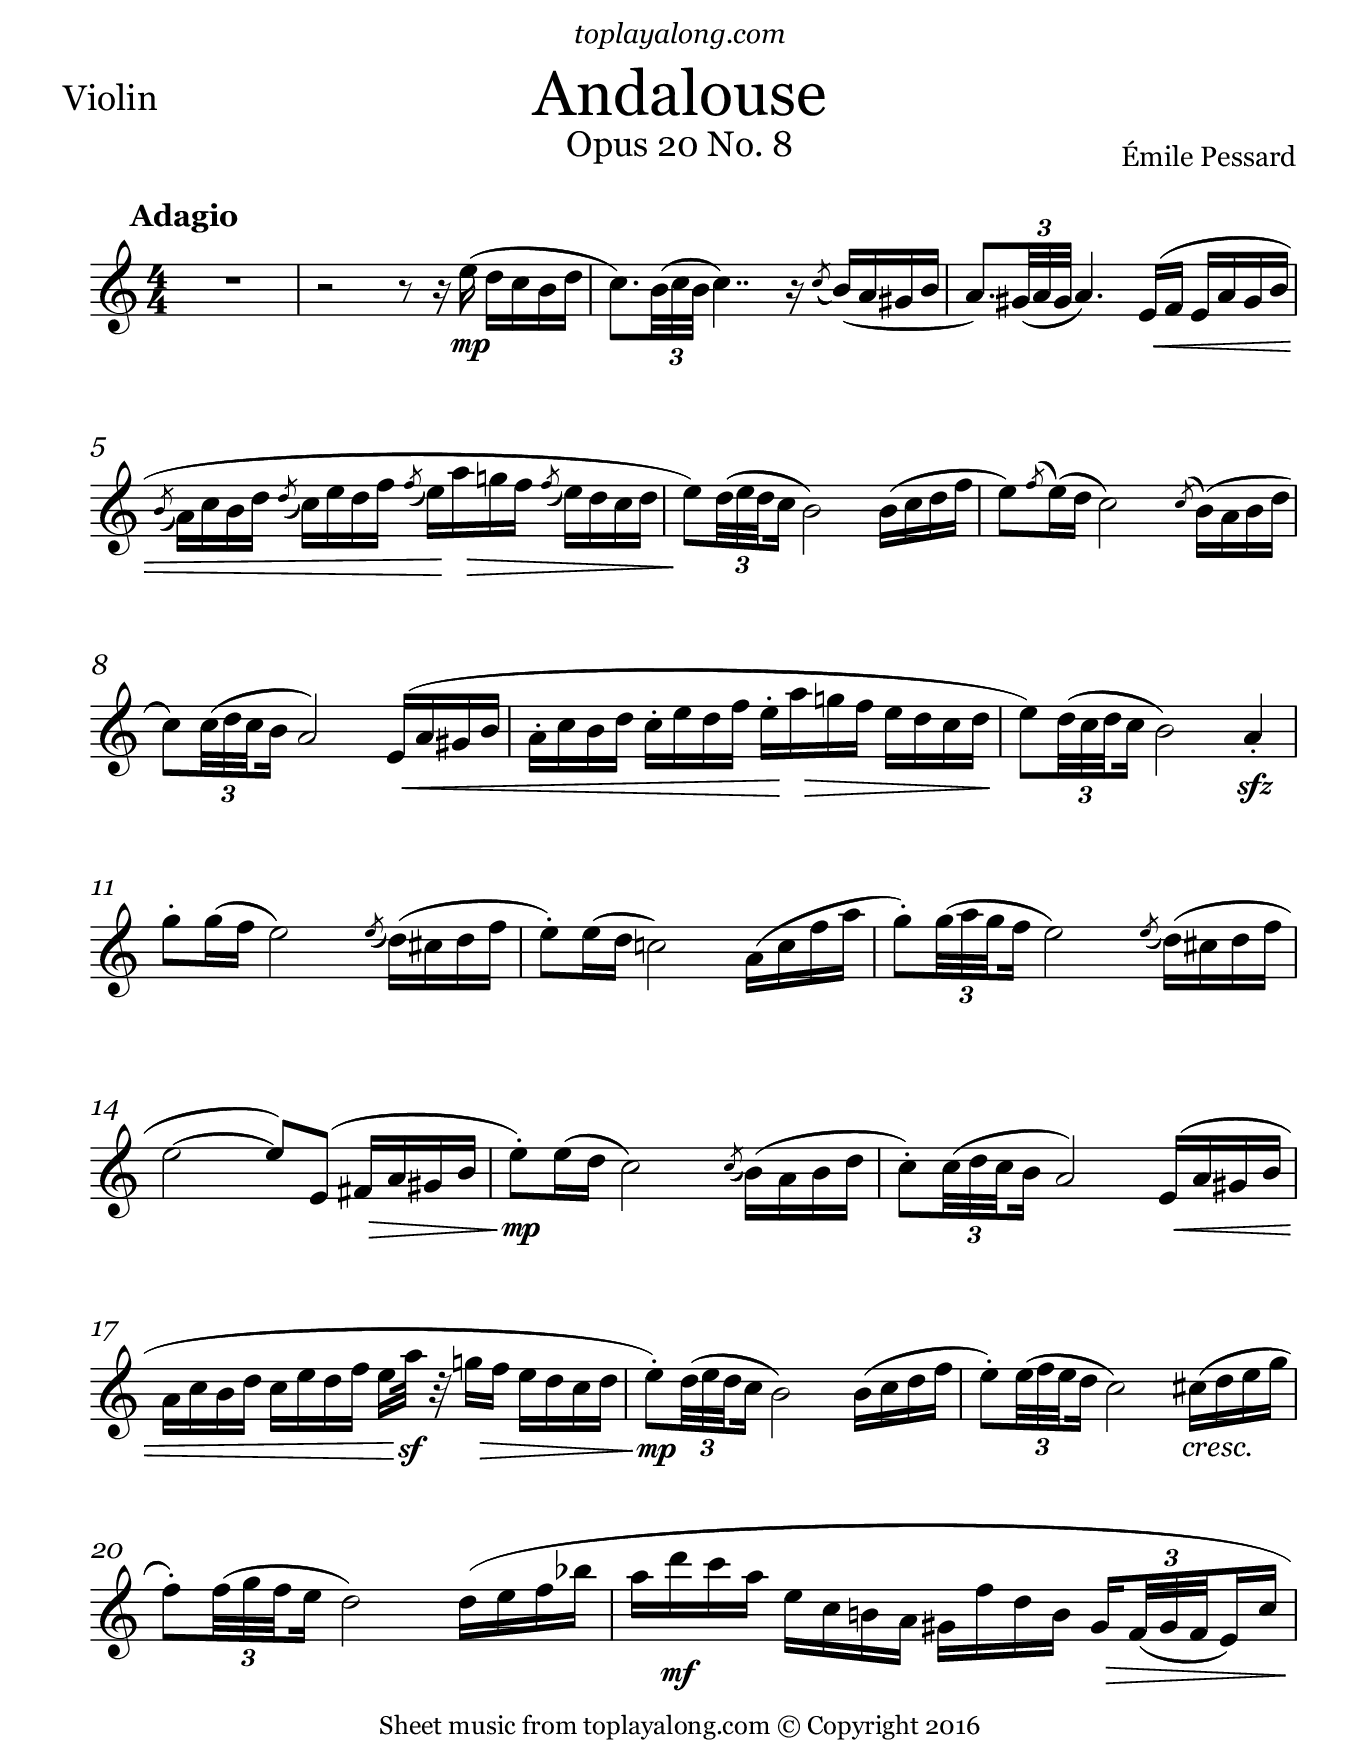 Andalouse by Pessard. Sheet music for Violin, page 1.